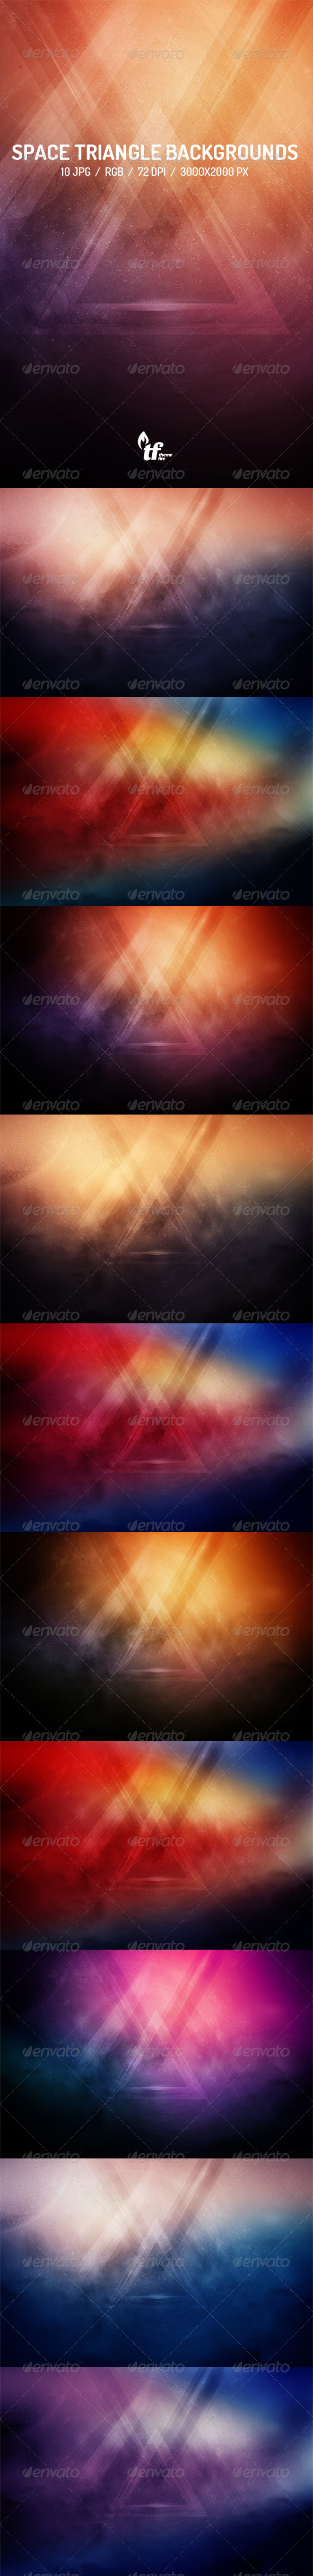 GraphicRiver Space Triangle Backgrounds 7740567